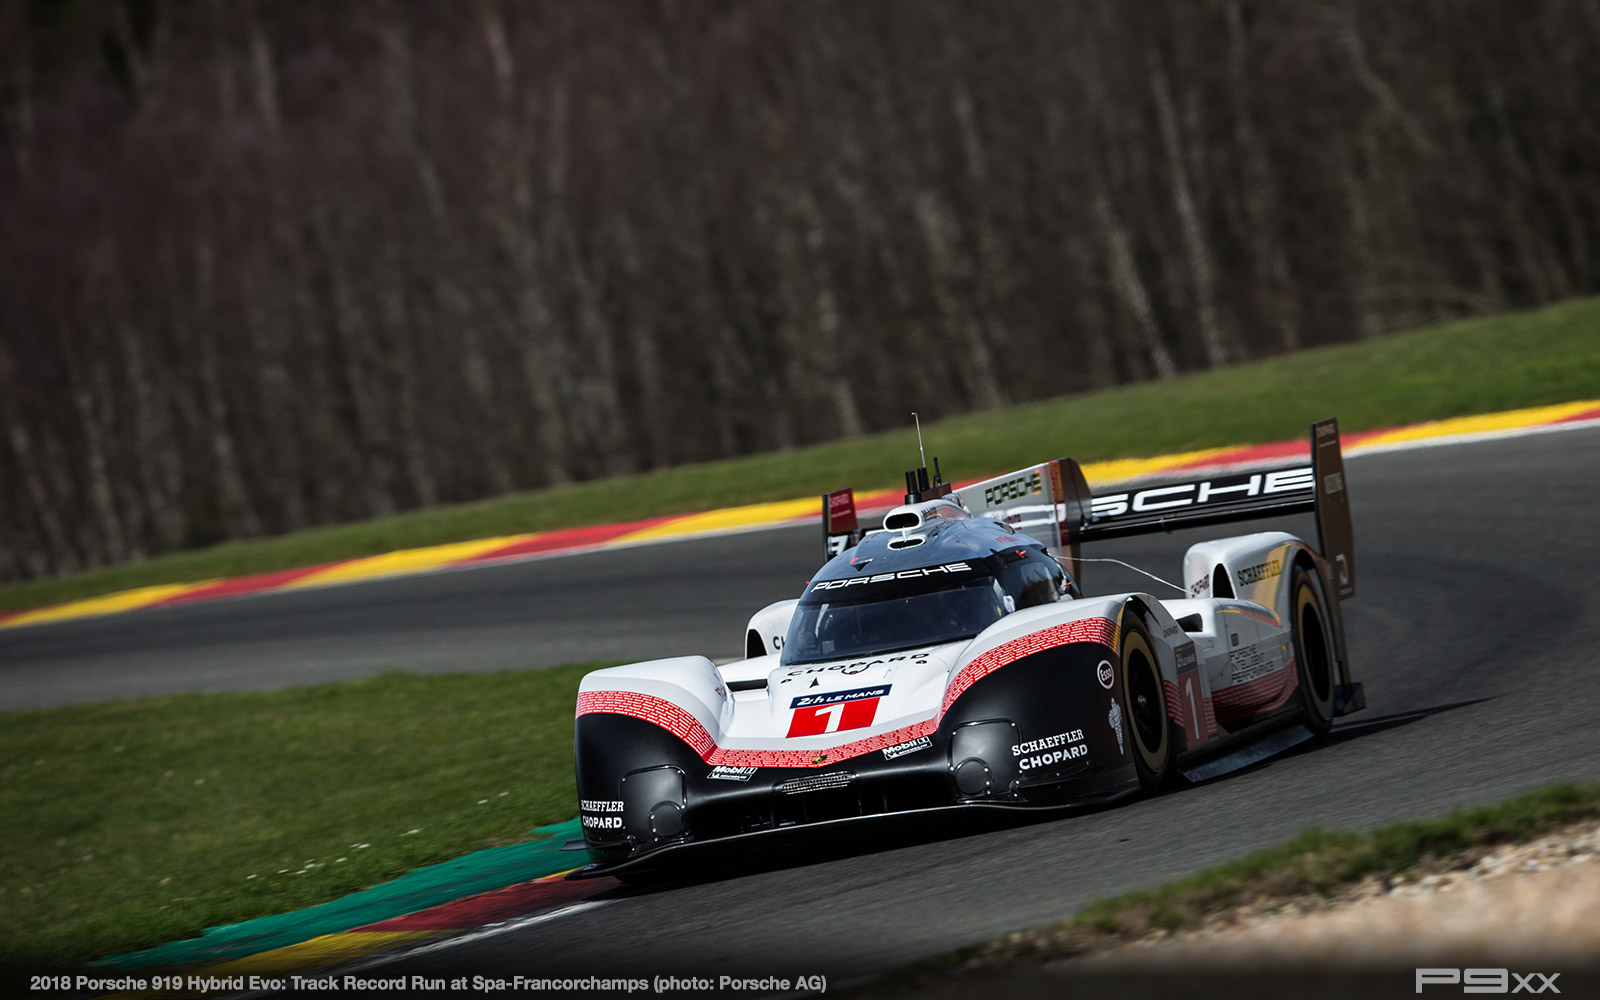 2018-porsche-919-evo-tribute-spa-francorchamps-475